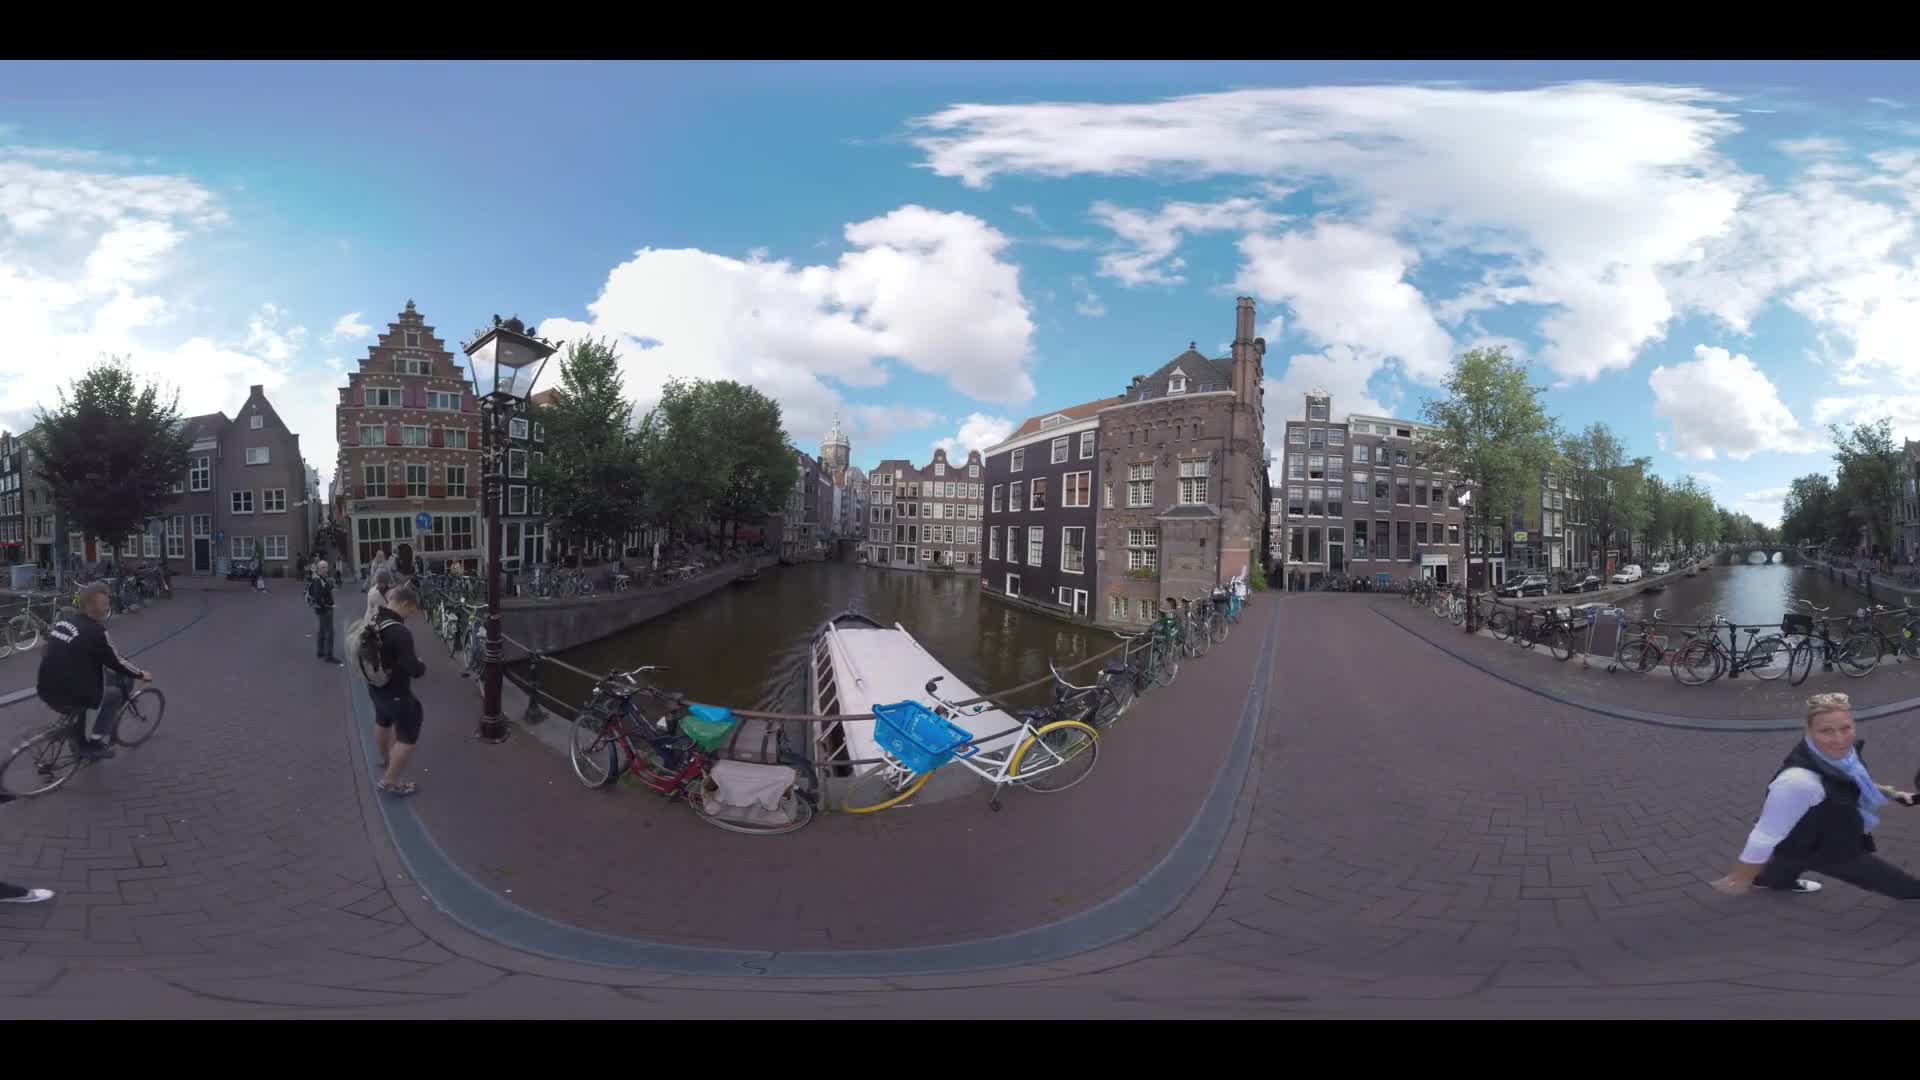 AMSTERDAM, NETHERLANDS - AUGUST 09, 2016: 360 VR Video. View from Armbrug to the canal, streets and Dutch houses. People walking on footbridge and touristic water bus sailing under it